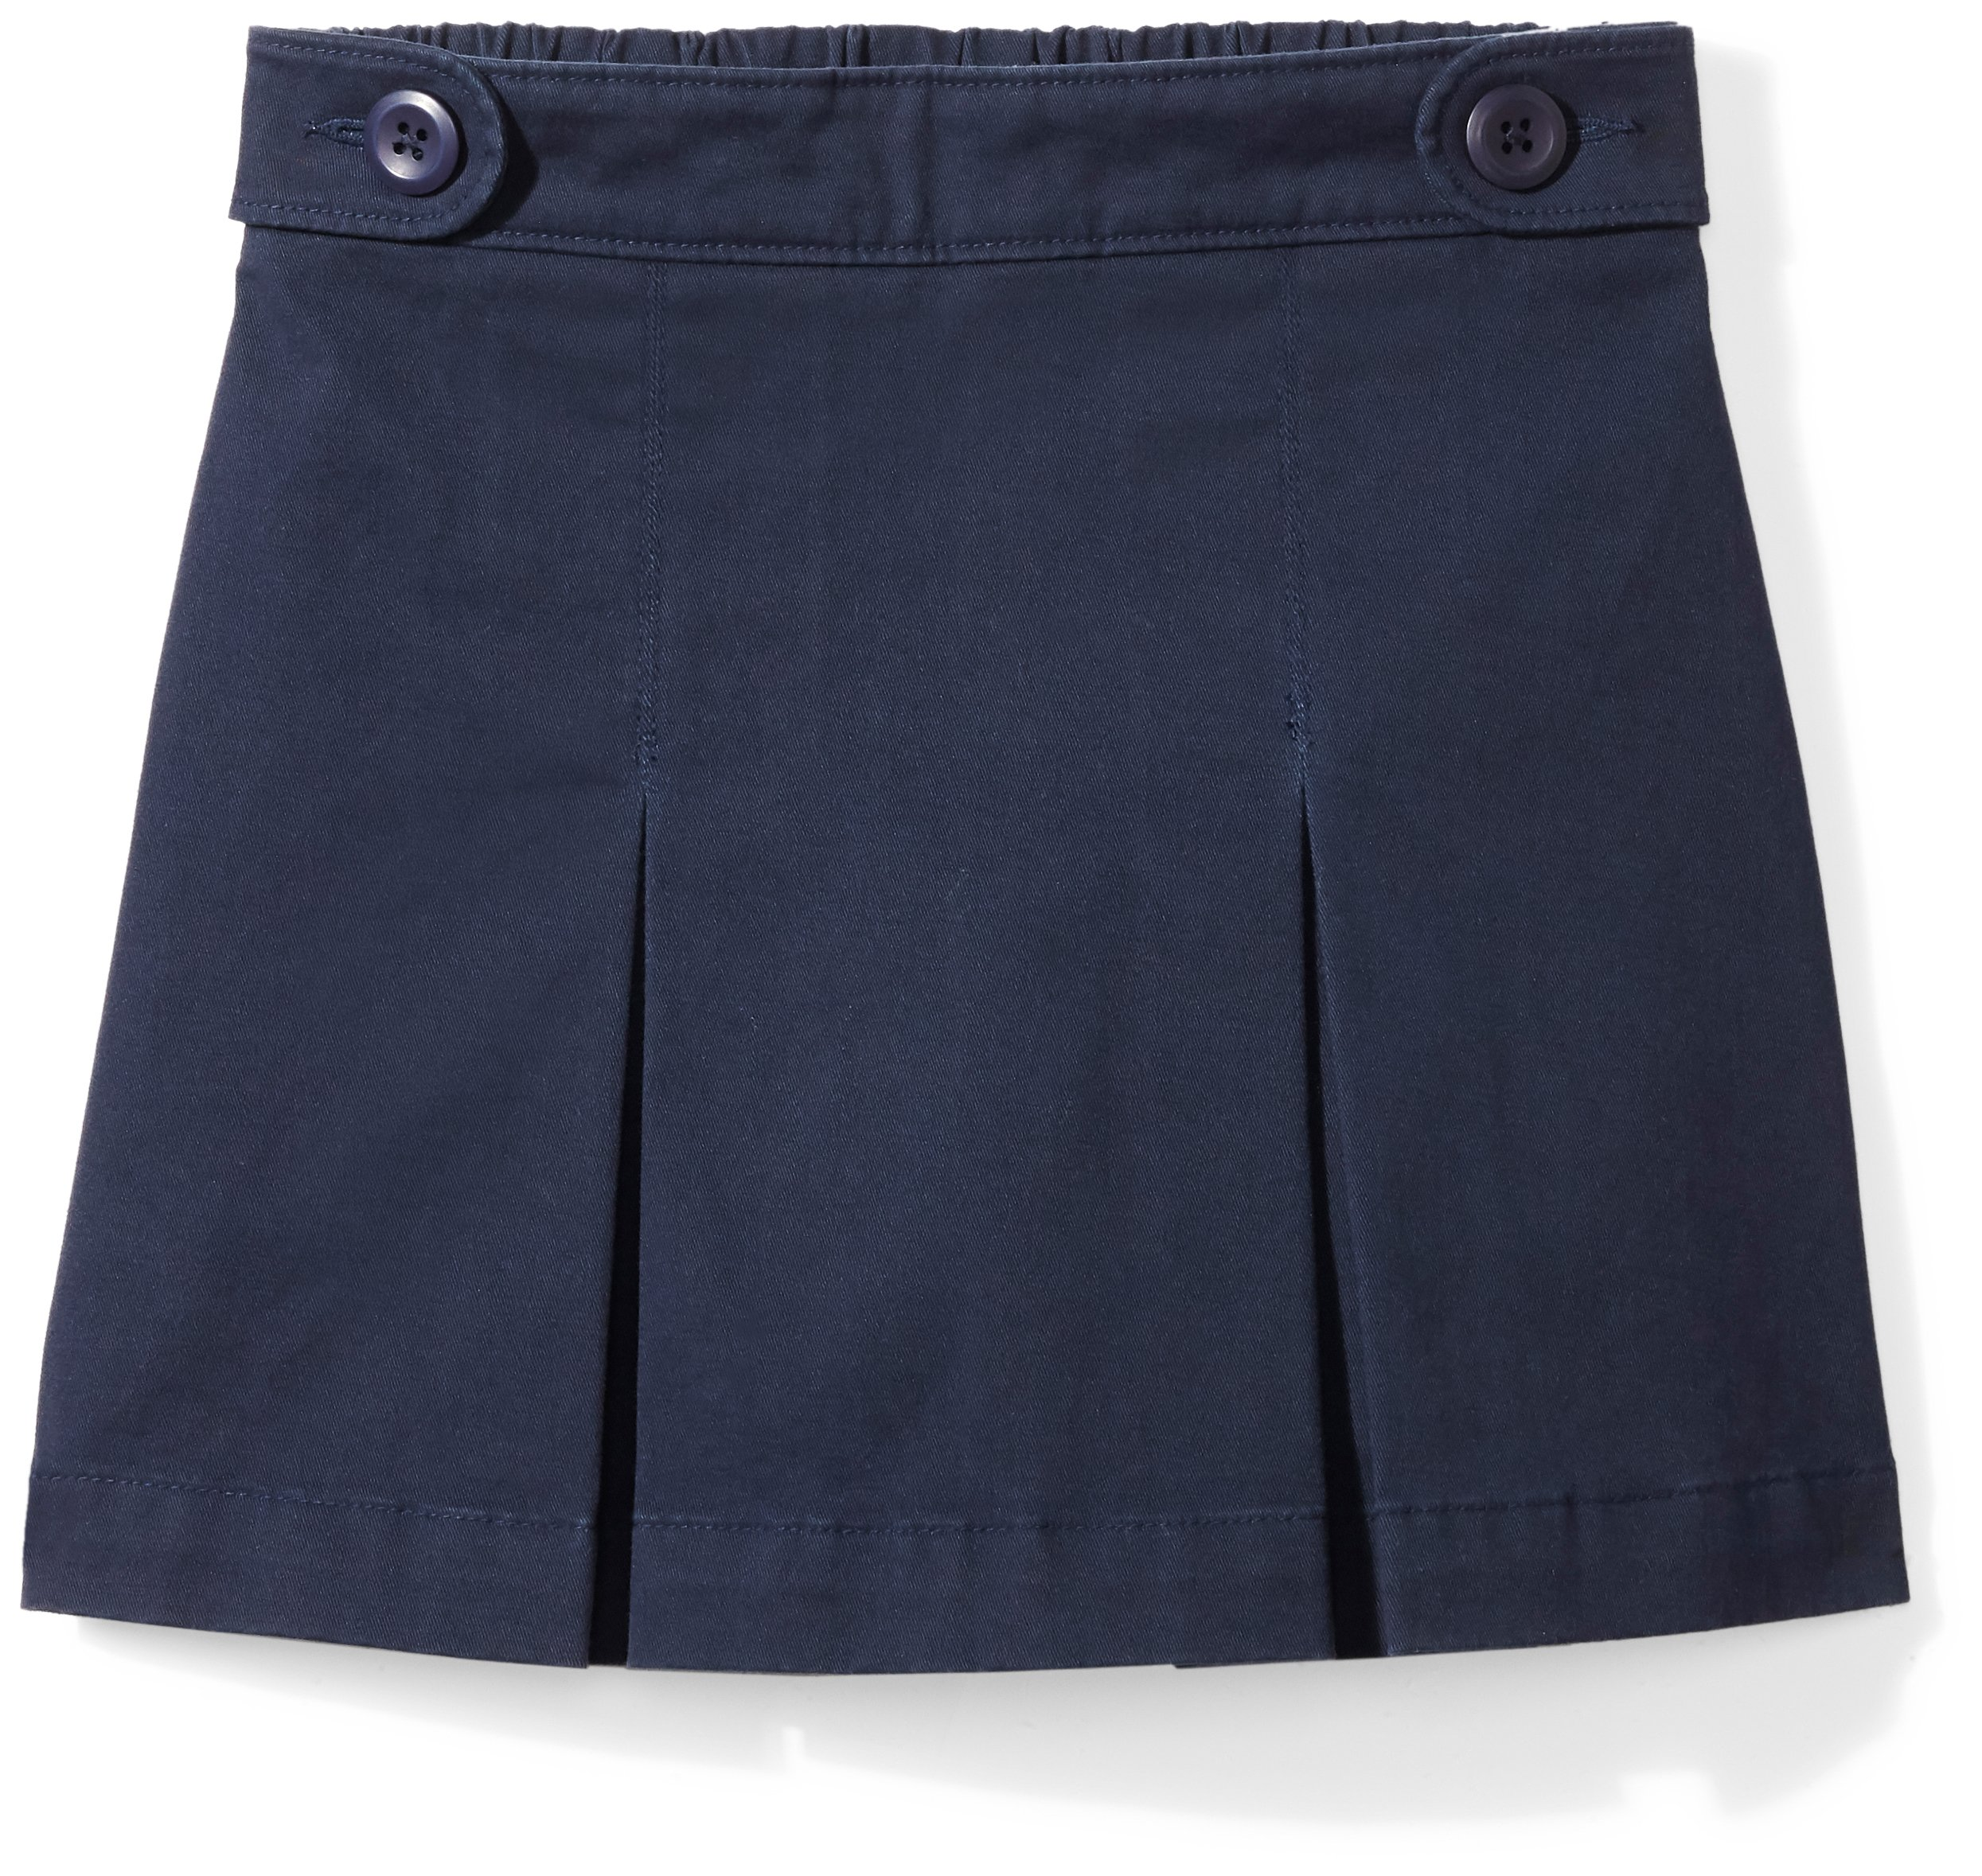 Amazon Essentials Girls' Uniform Skort, Navy Blazer, S (6/7)